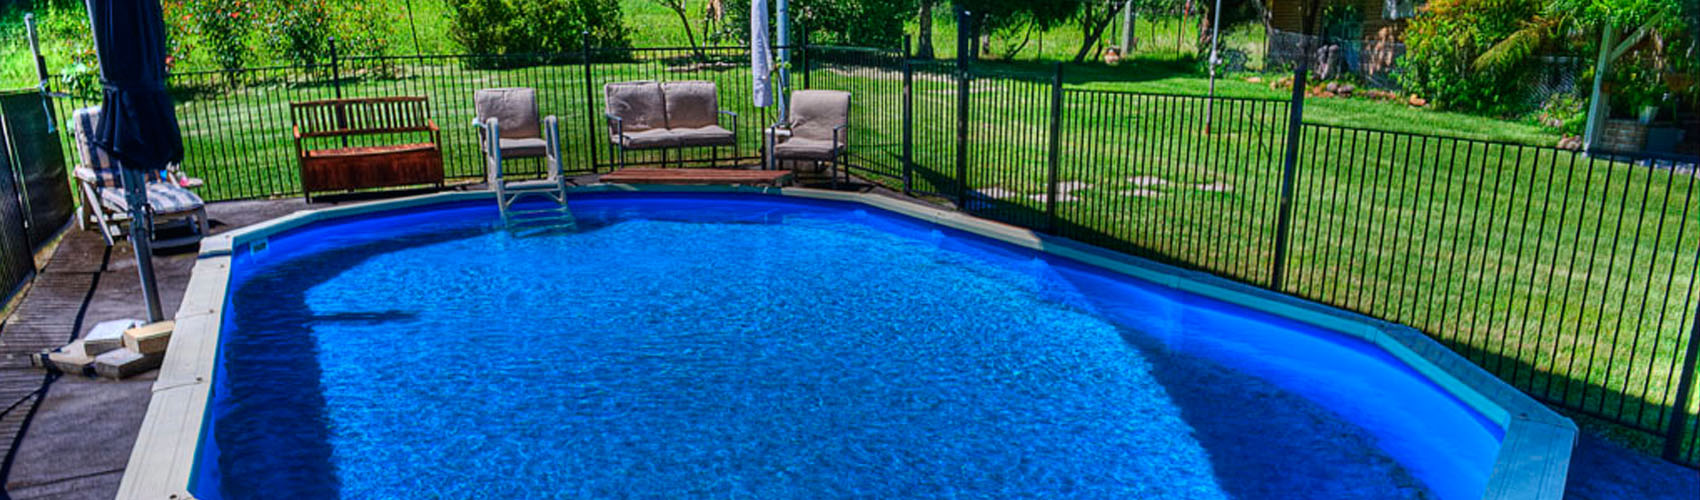 Above Ground Pool Sales